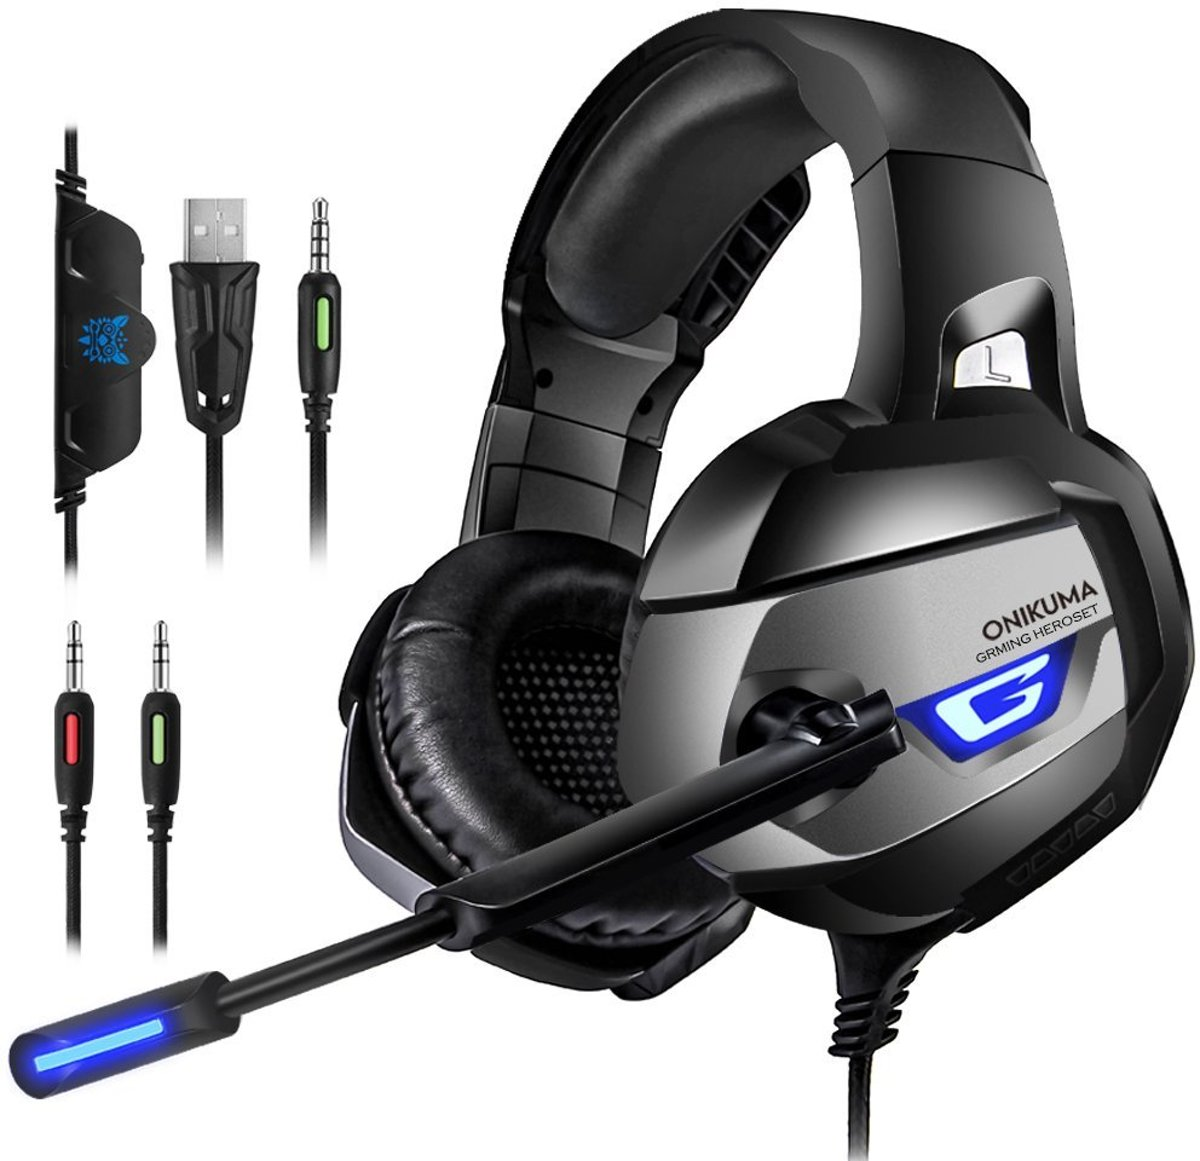 Gaming Headset voor PC, PS4, Xbox One met Microfoon – Gaming Koptelefoon Over Ear – Surround Sound met Kristalheldere Geluid + LED lichtjes + Noice Cancelling